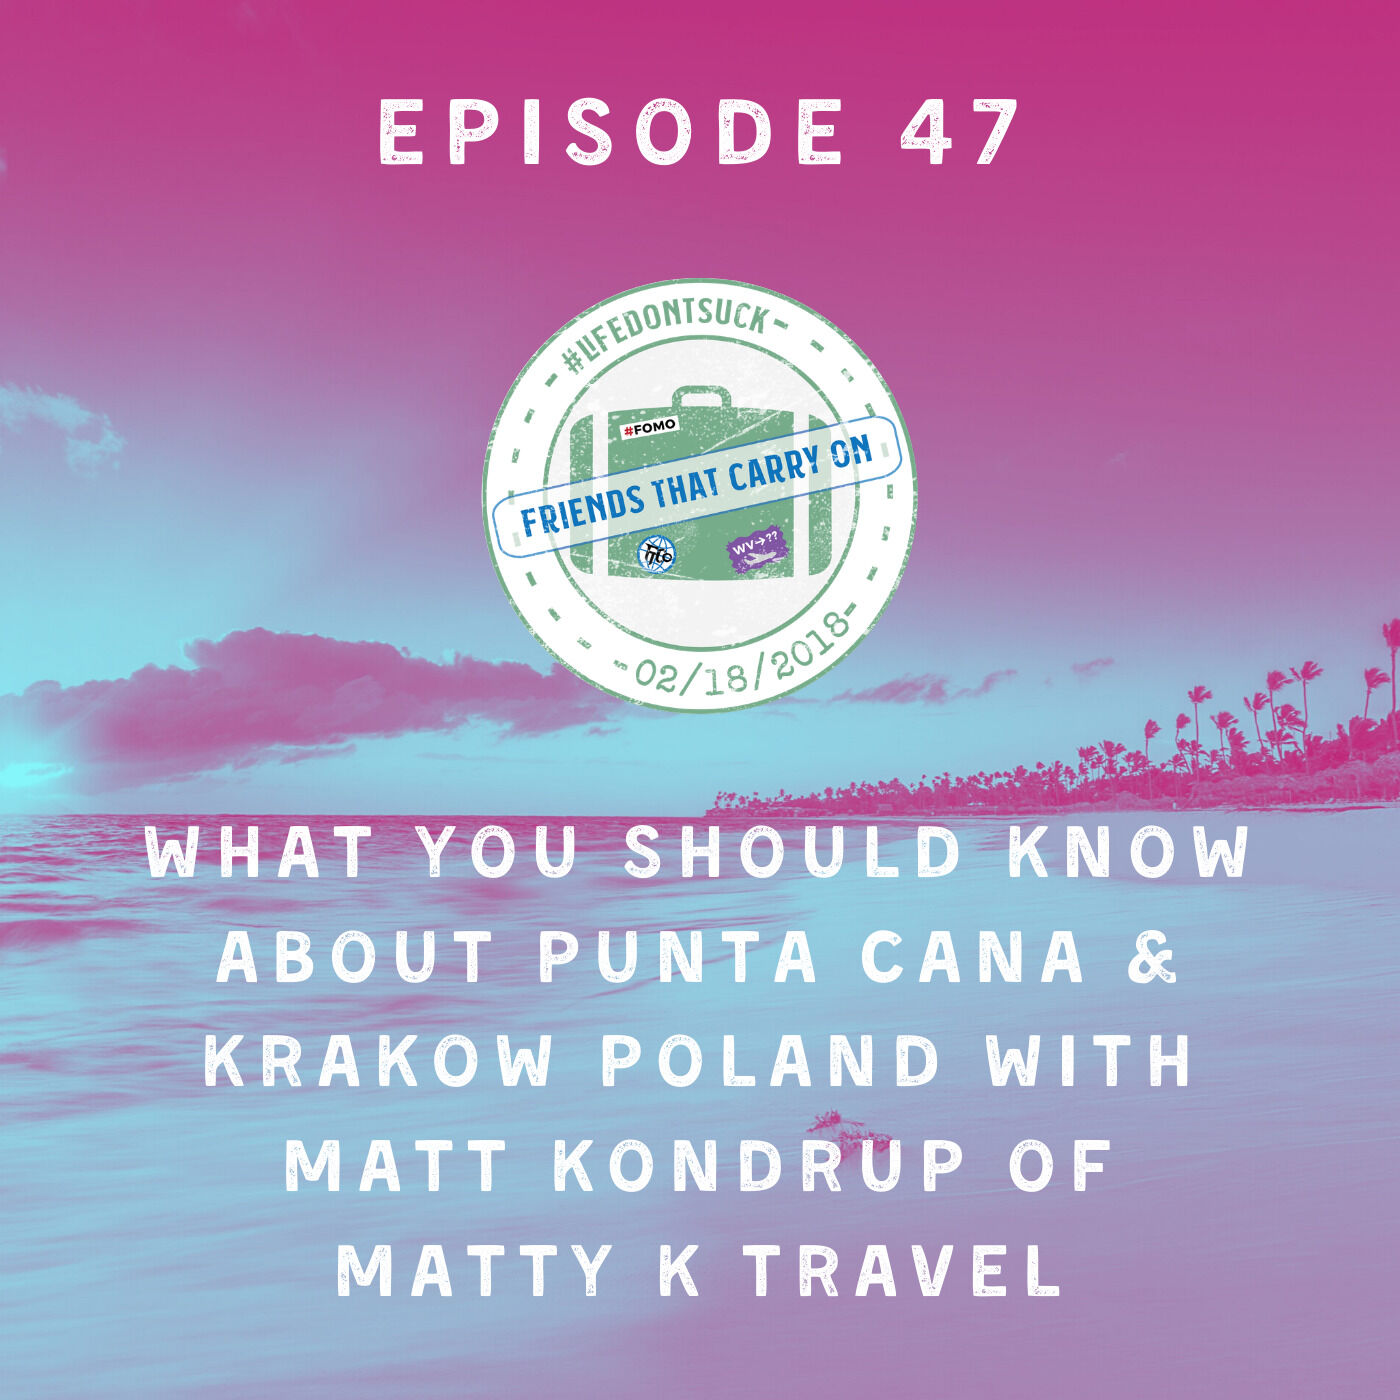 Ep. 47 | What You Should Know About Punta Cana & Krakow Poland with Matt Kondrup of Matty K Travel